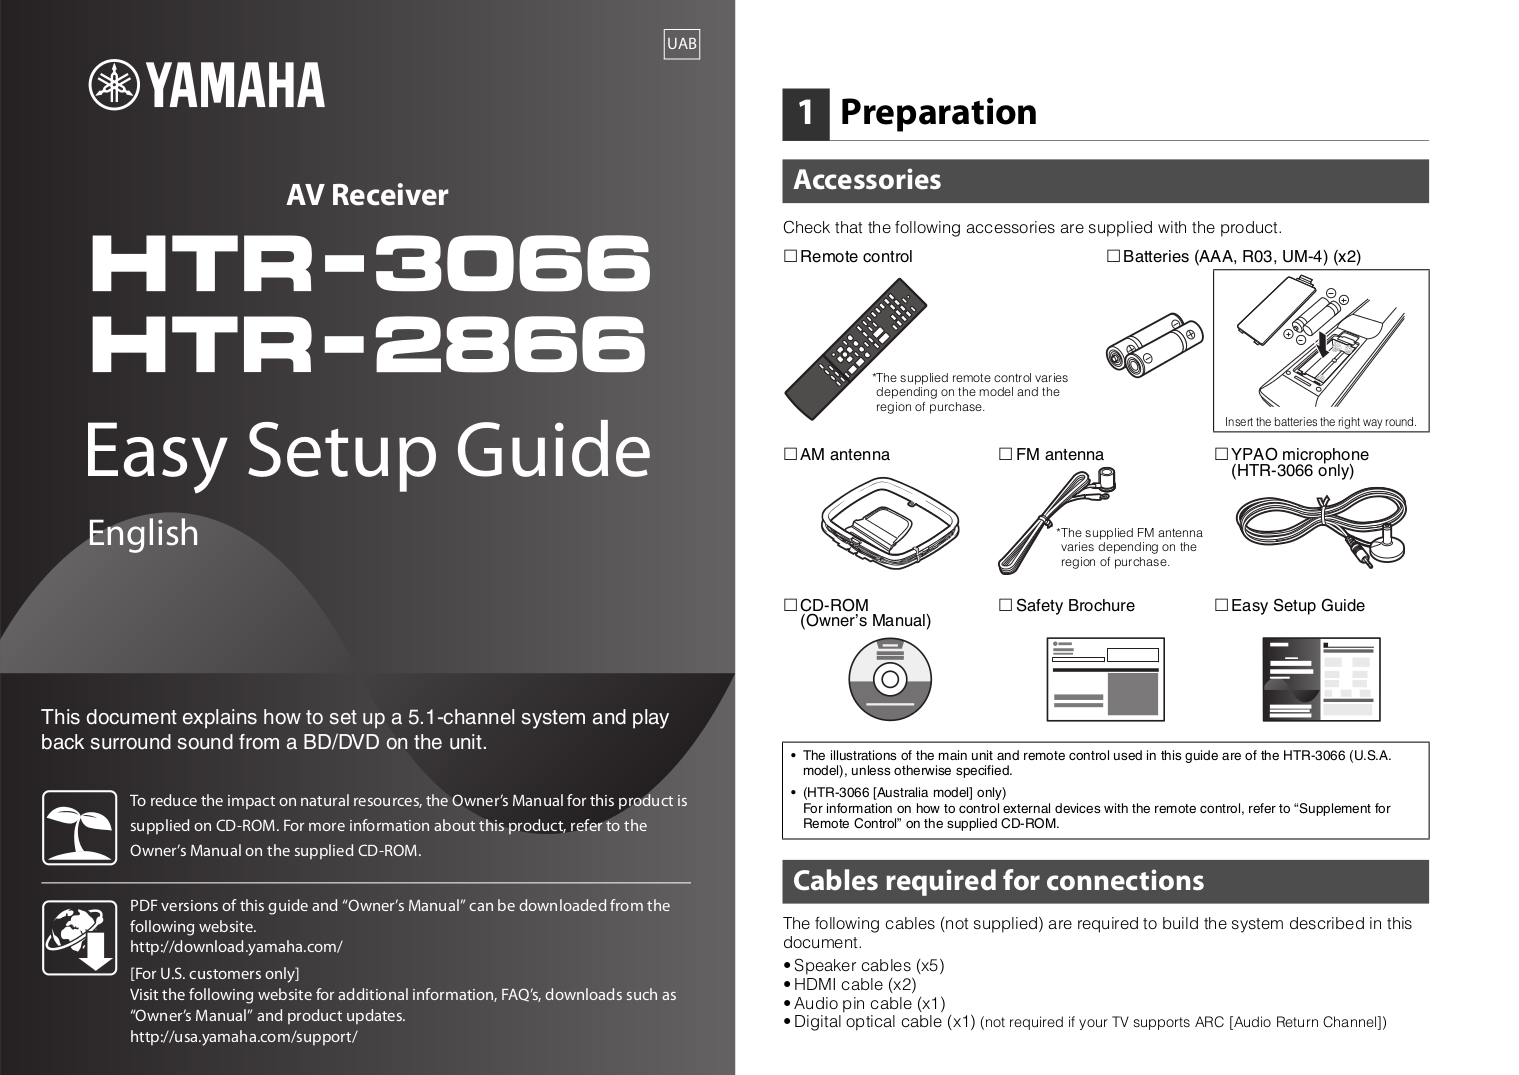 Do you have a question about the Yamaha RX-V373